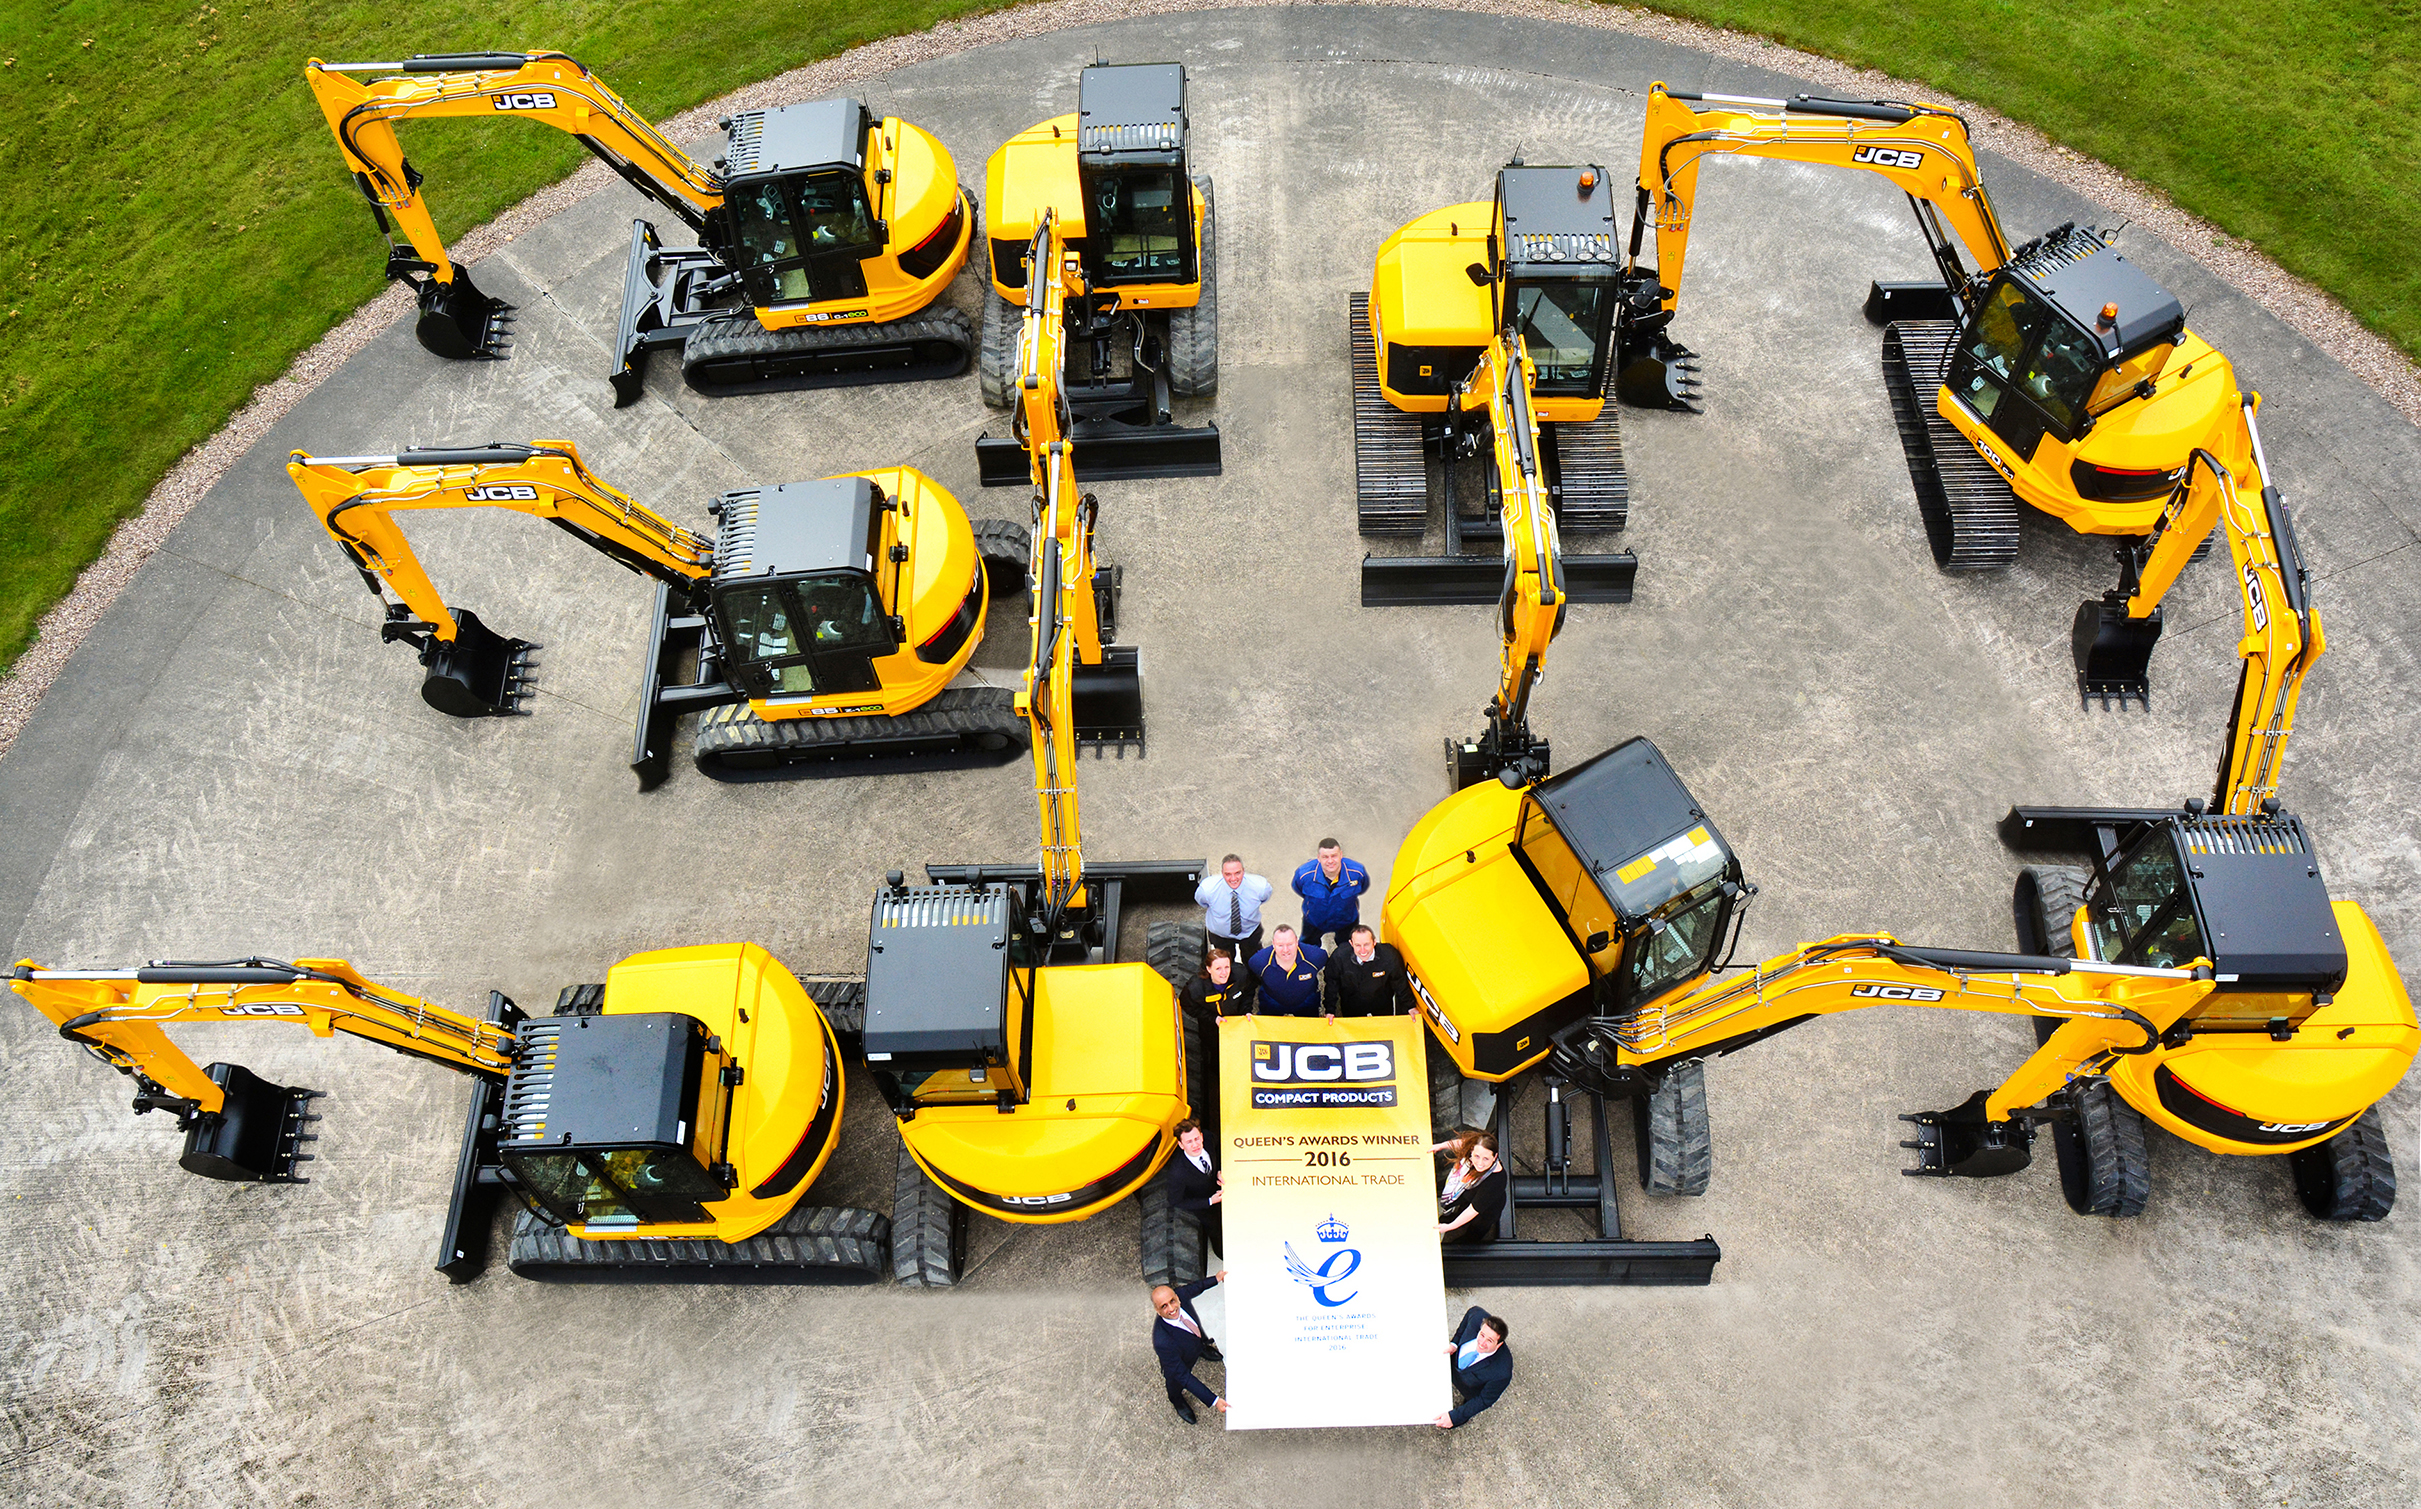 JCB Compact Products - Queen's Award